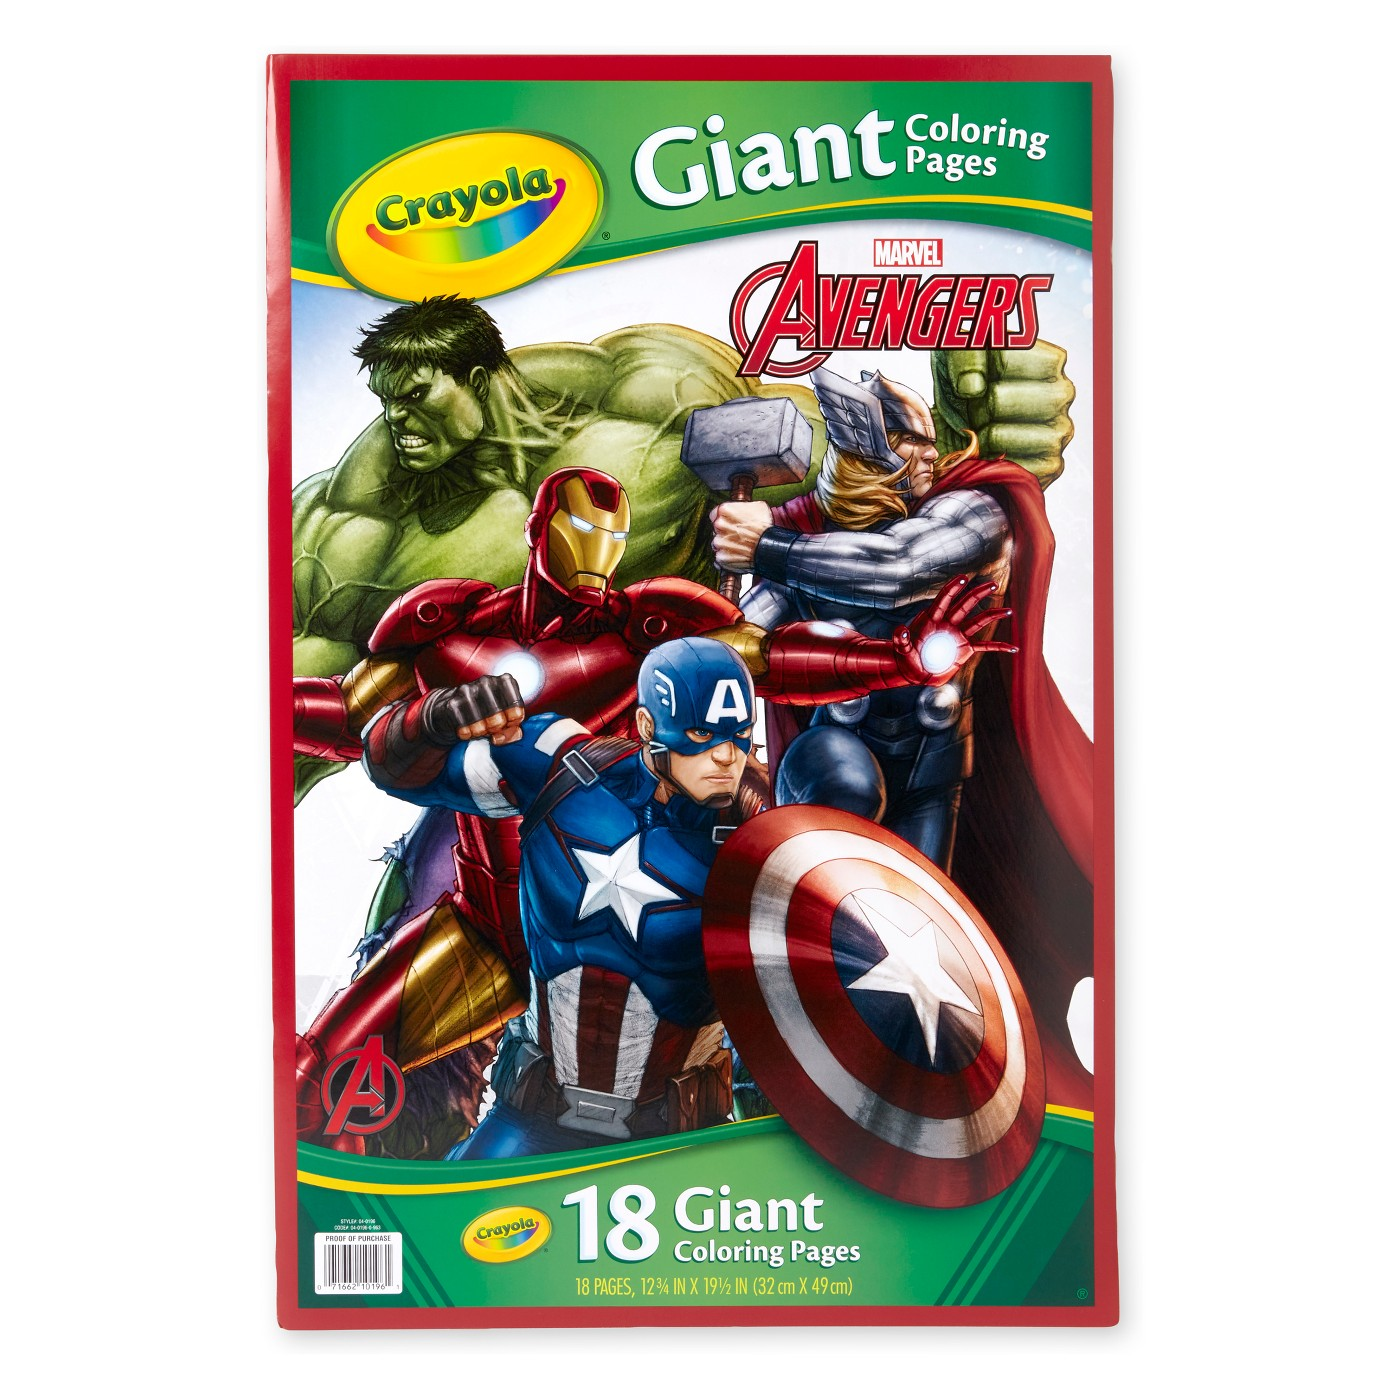 Crayola Avengers Giant Coloring Pages - image 1 of 4